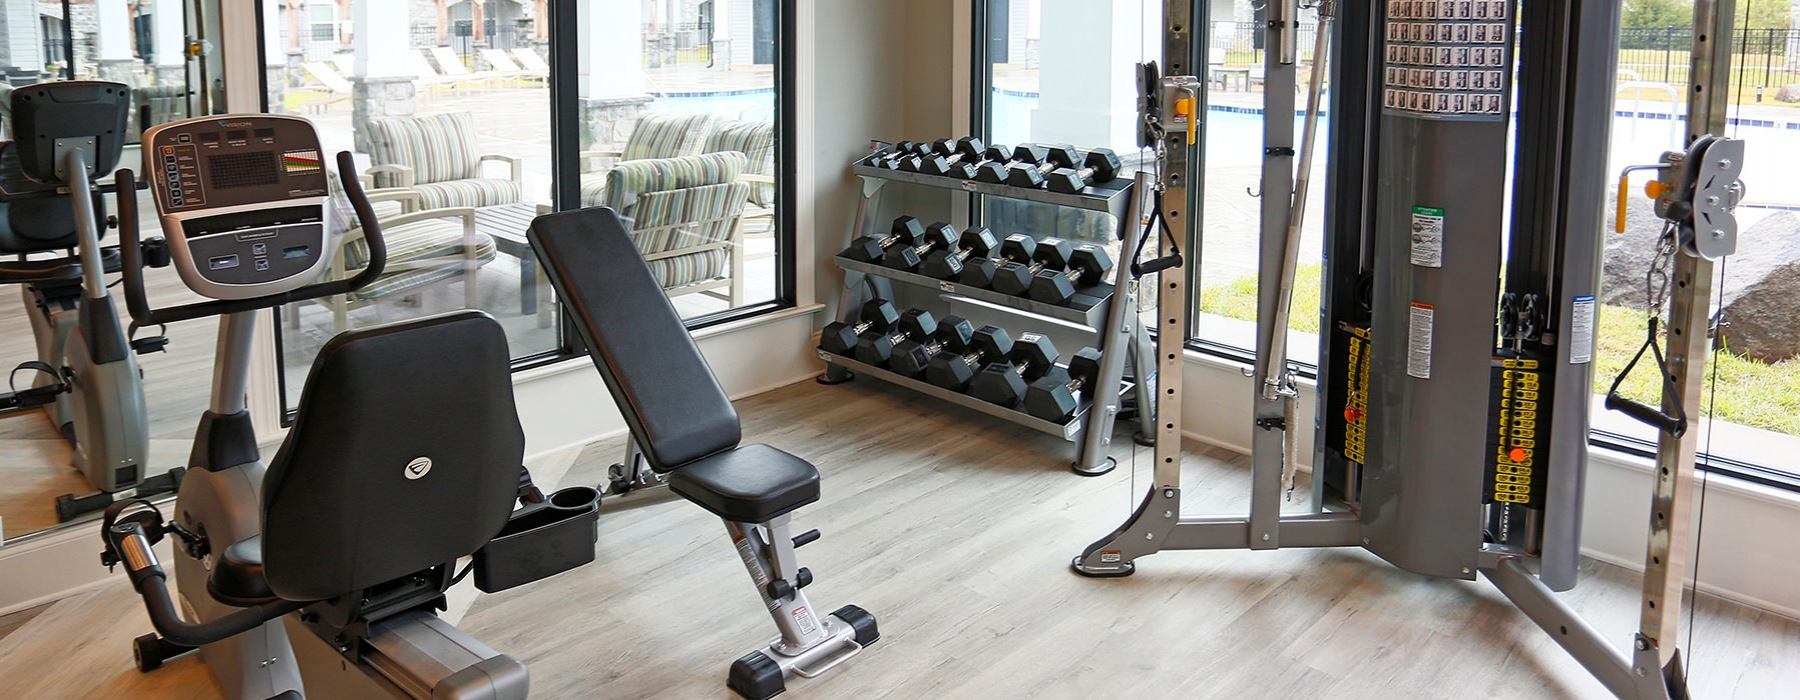 Fitness Center With Freeweights & Natural Lighting At Laurel View Apartments in Concord, NC